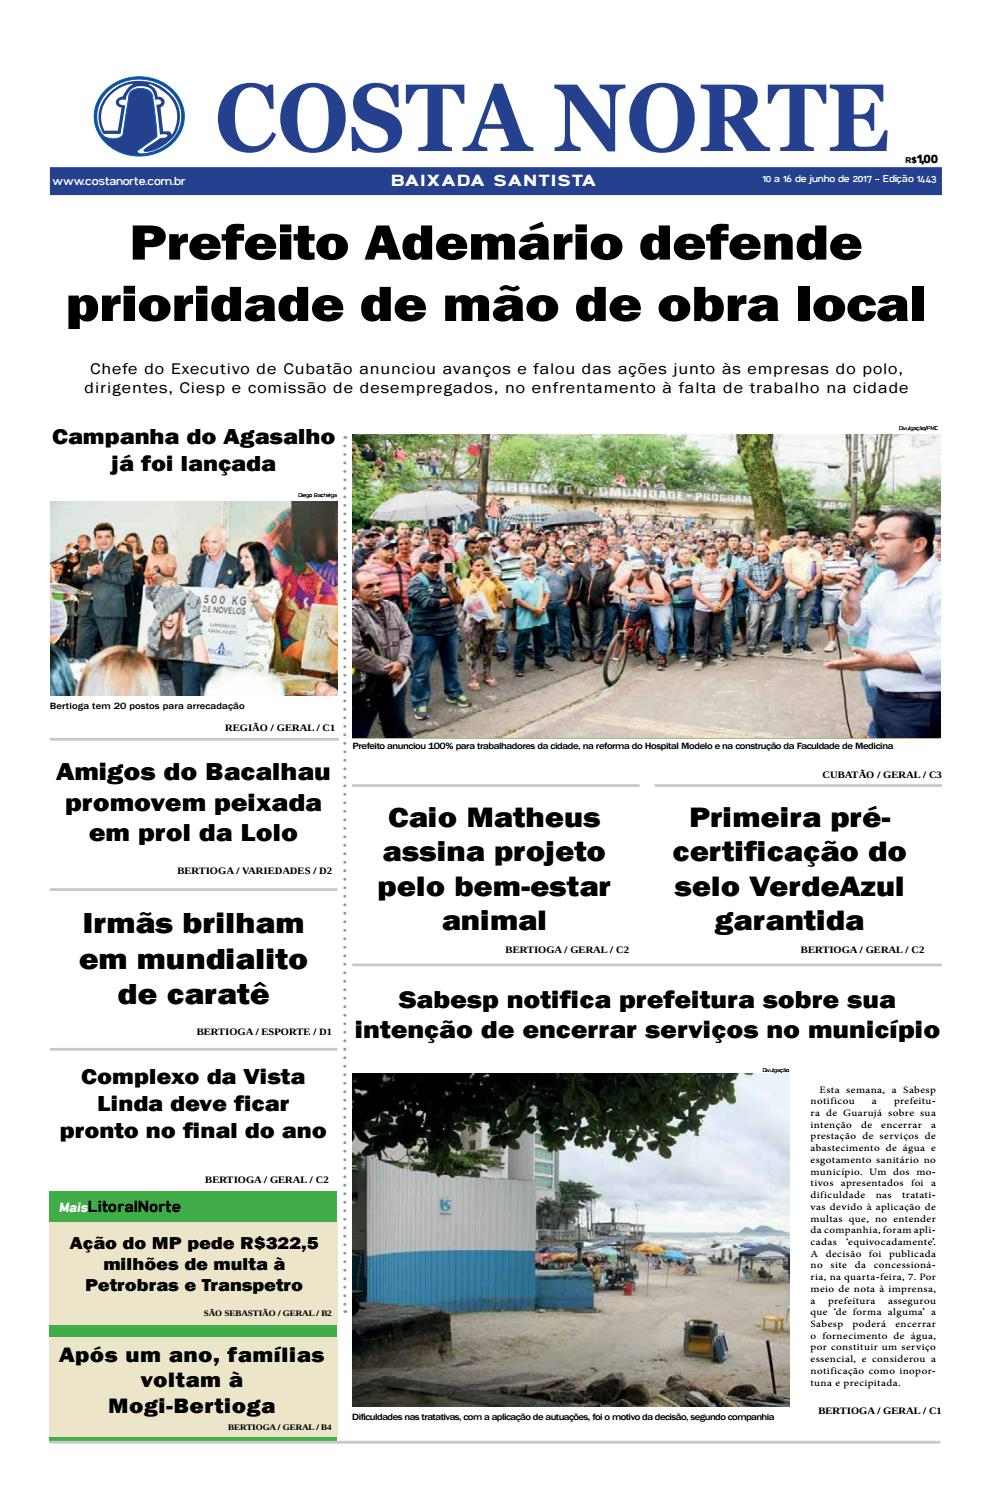 Jornal costa norte 1443 by Costa Norte - issuu 36c5f88bf19c6